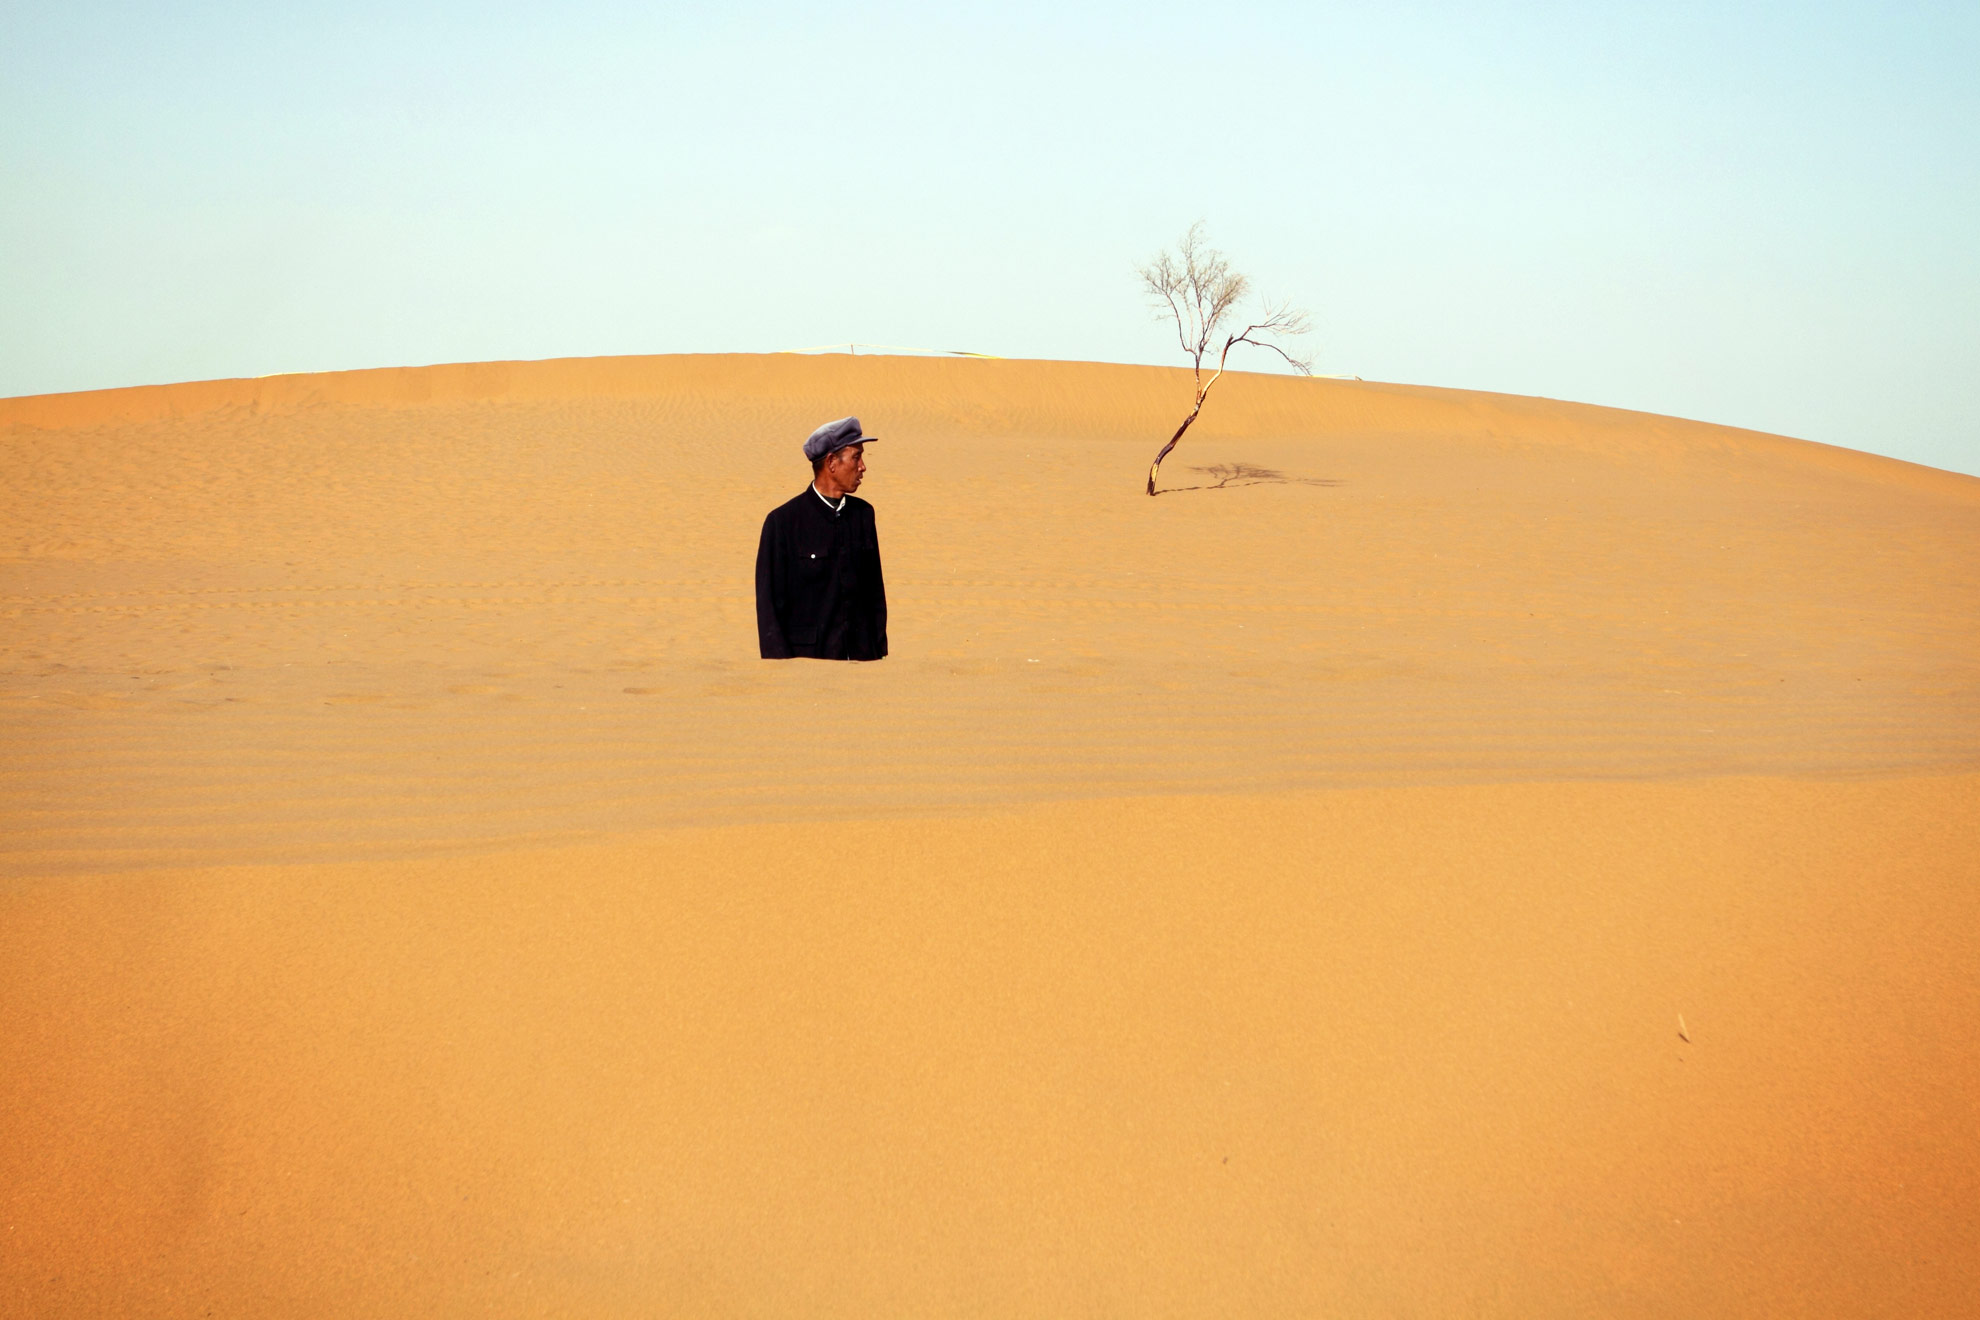 Sean-Gallagher-Desertification-in-China-